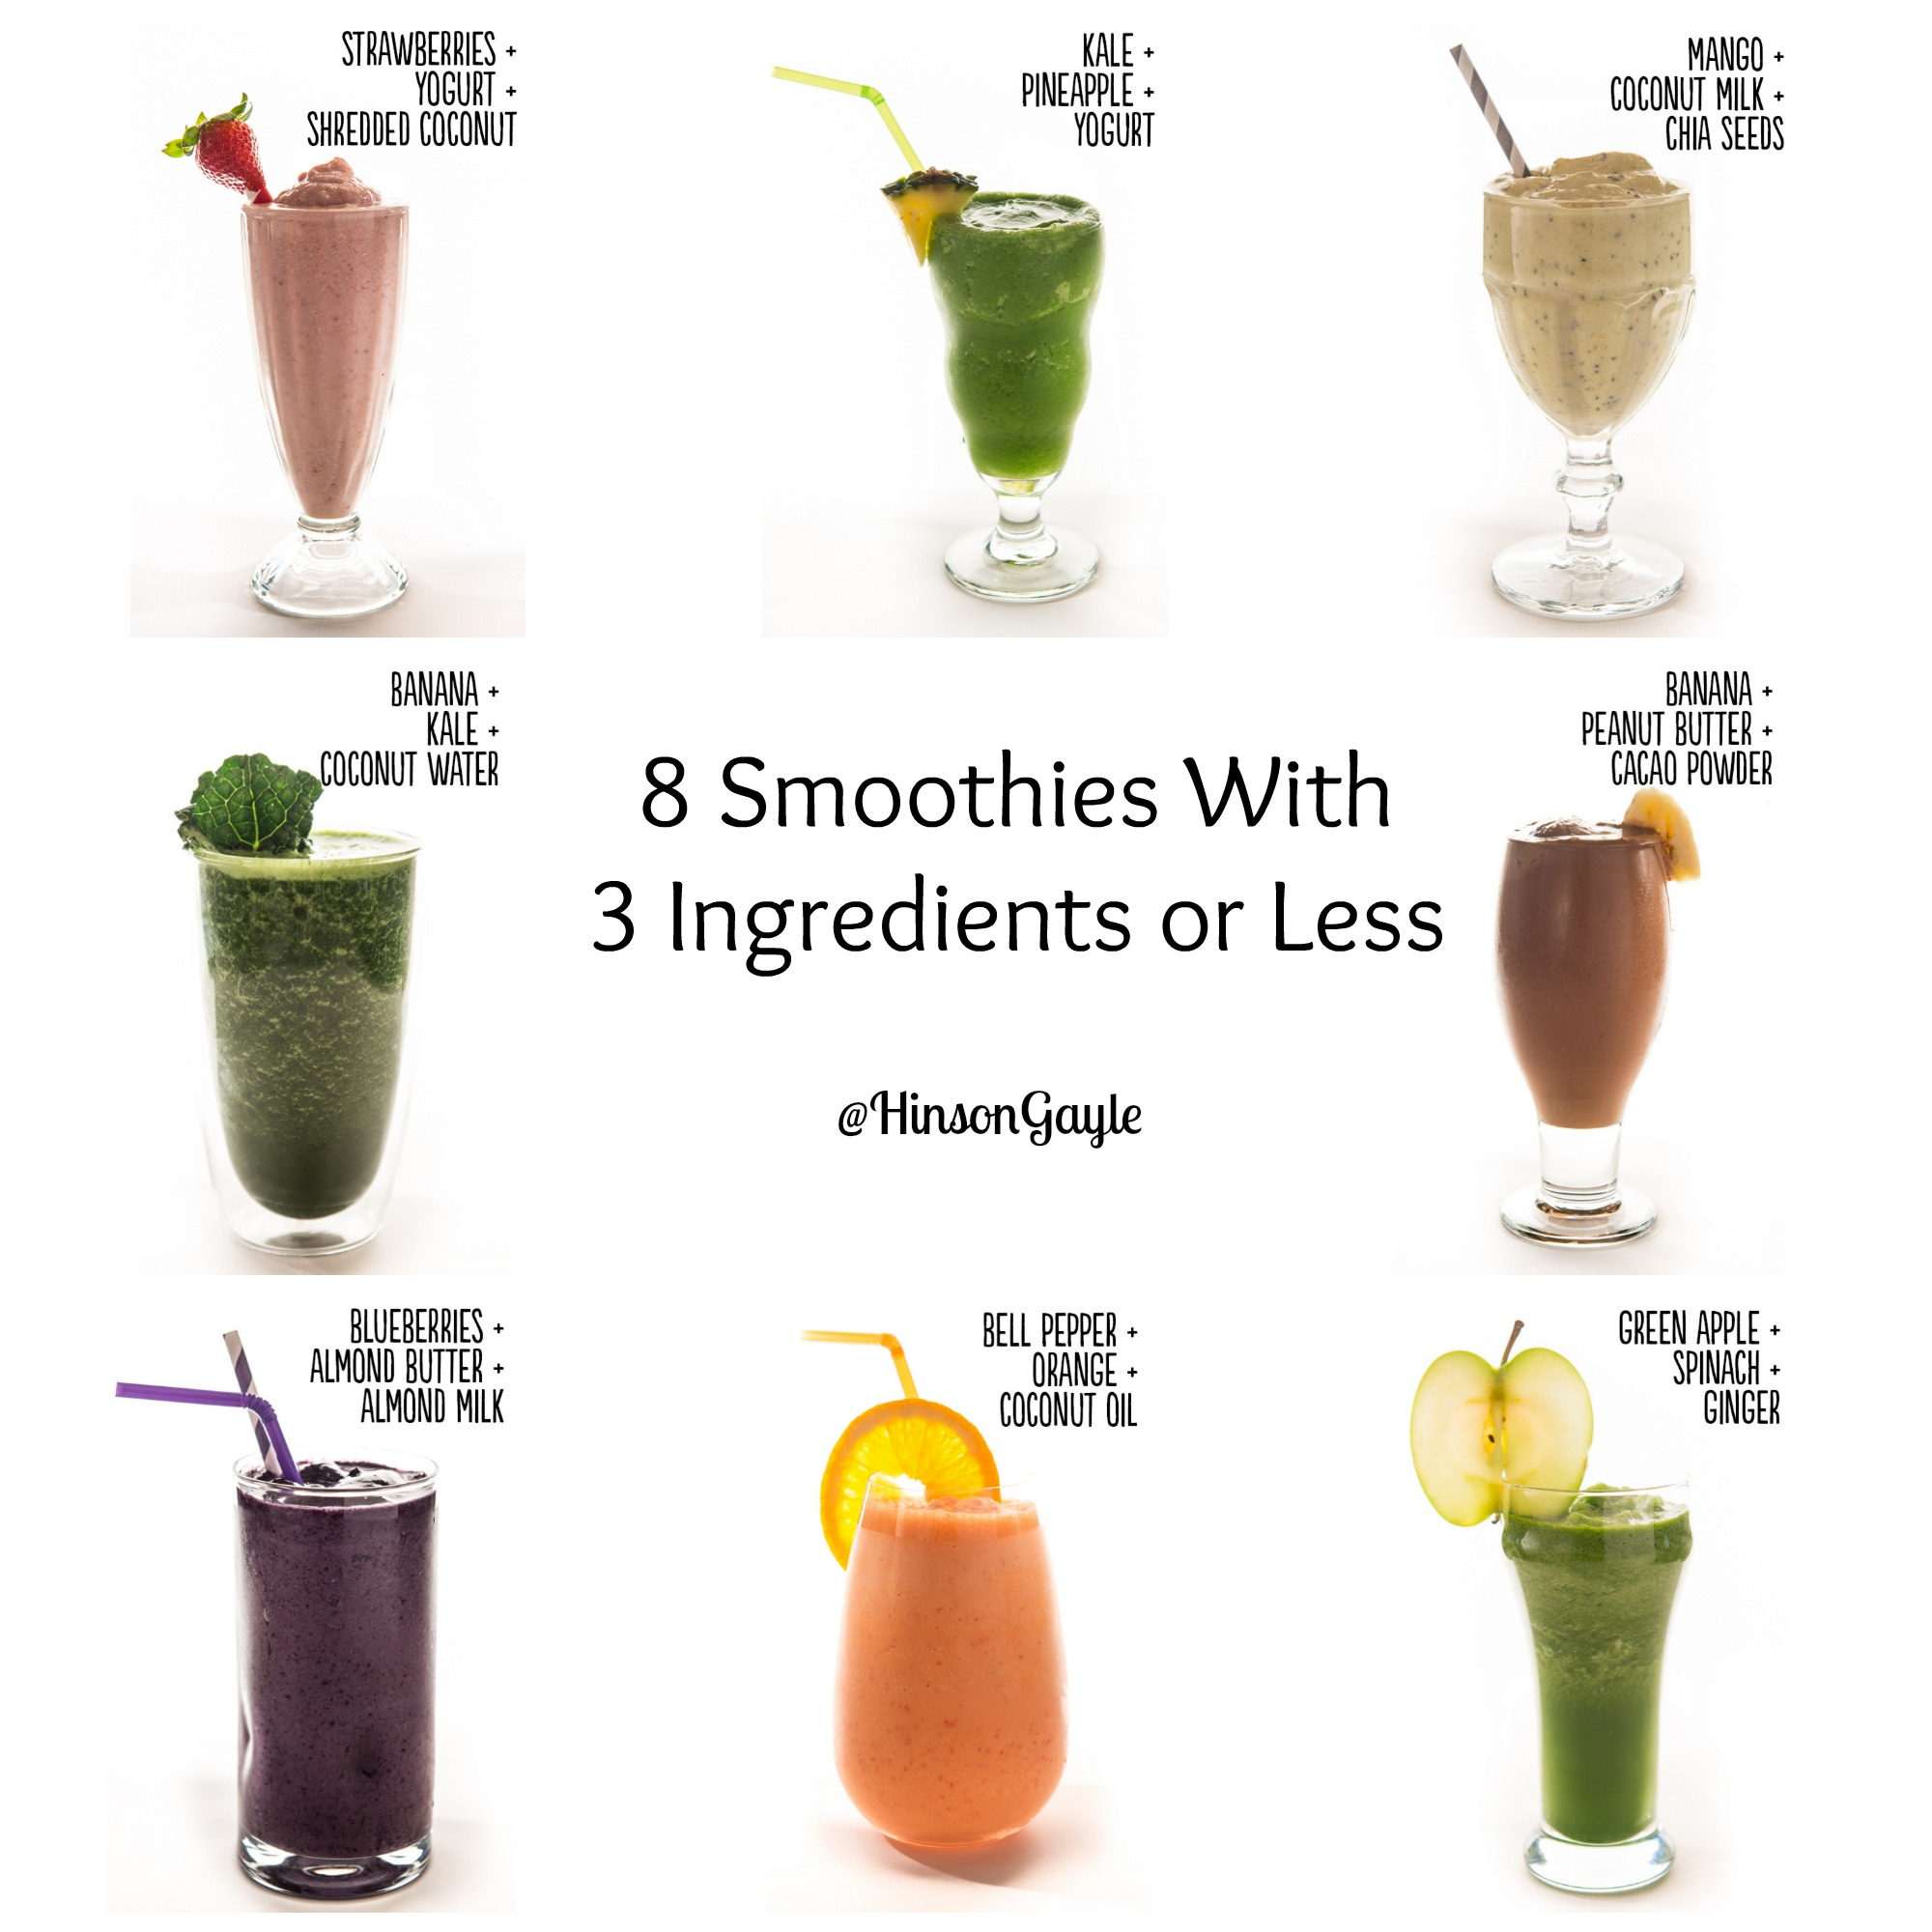 smoothie images via Sarah Flotard and Malina Lopez